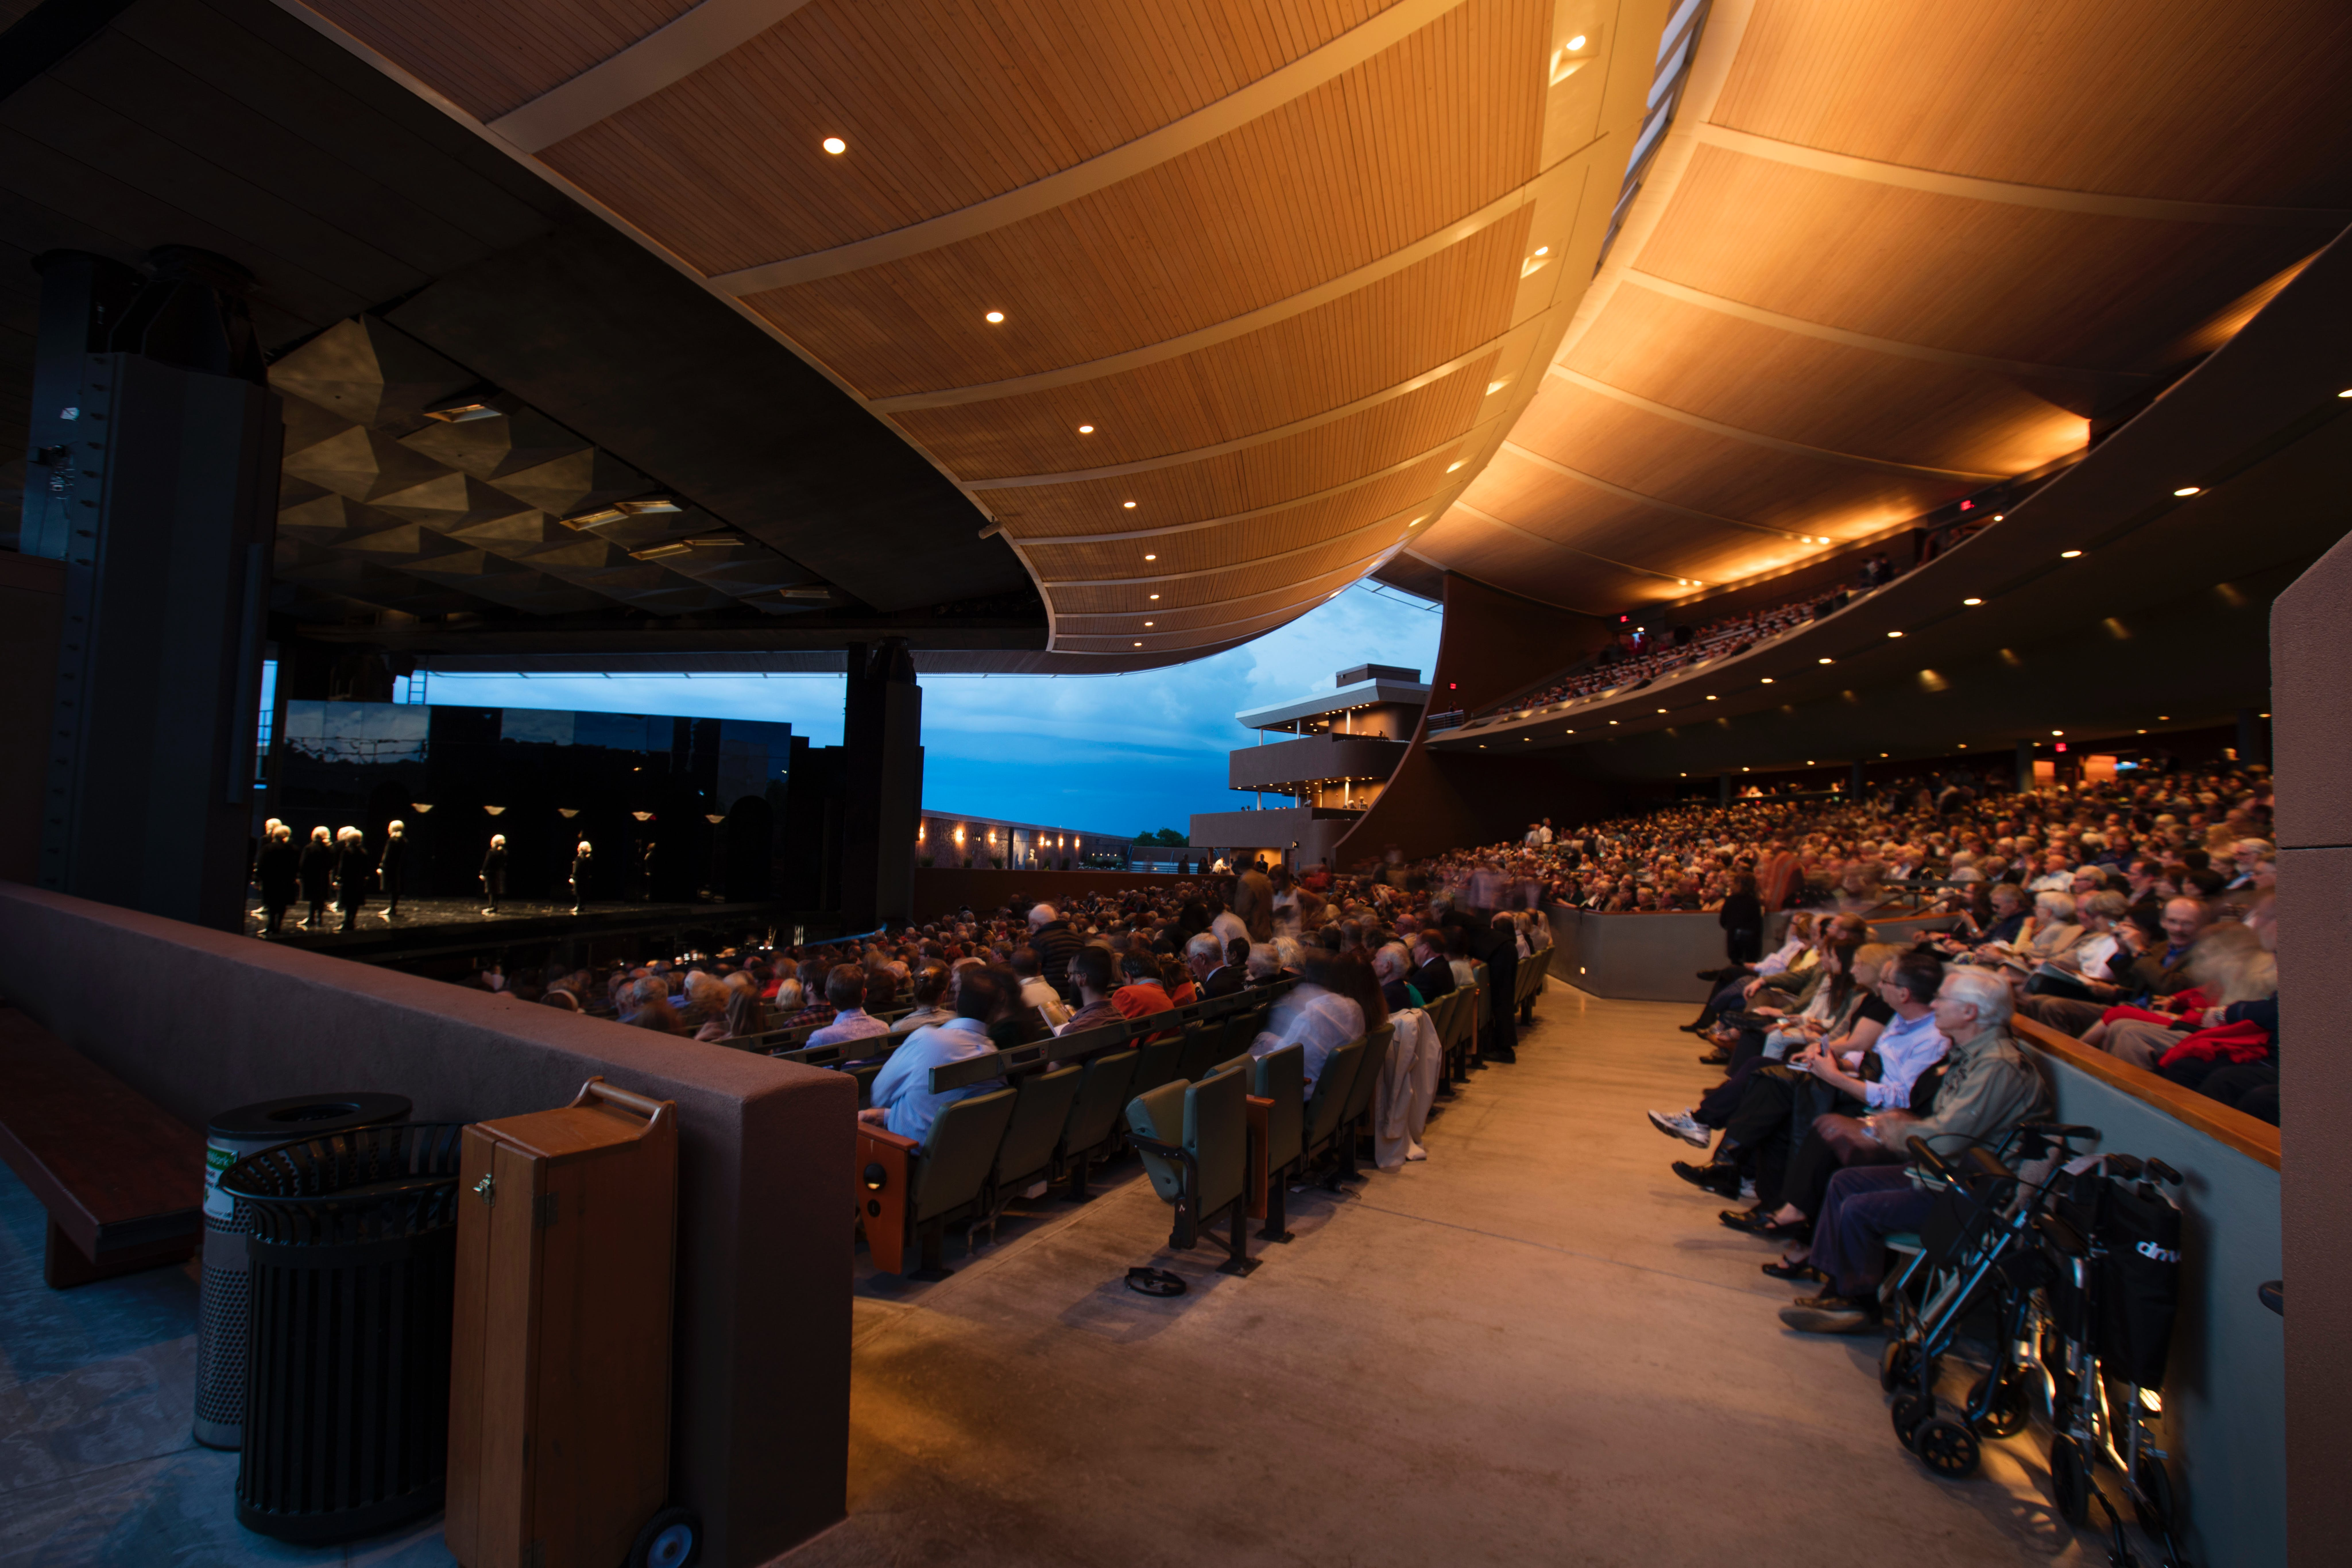 <p><em>Santa Fe Opera is known for its remarkable open-air performance space, considered one of the most beautiful in the world. Photo: &copy; Kate Russell for Santa Fe Opera, 2016</em></p>